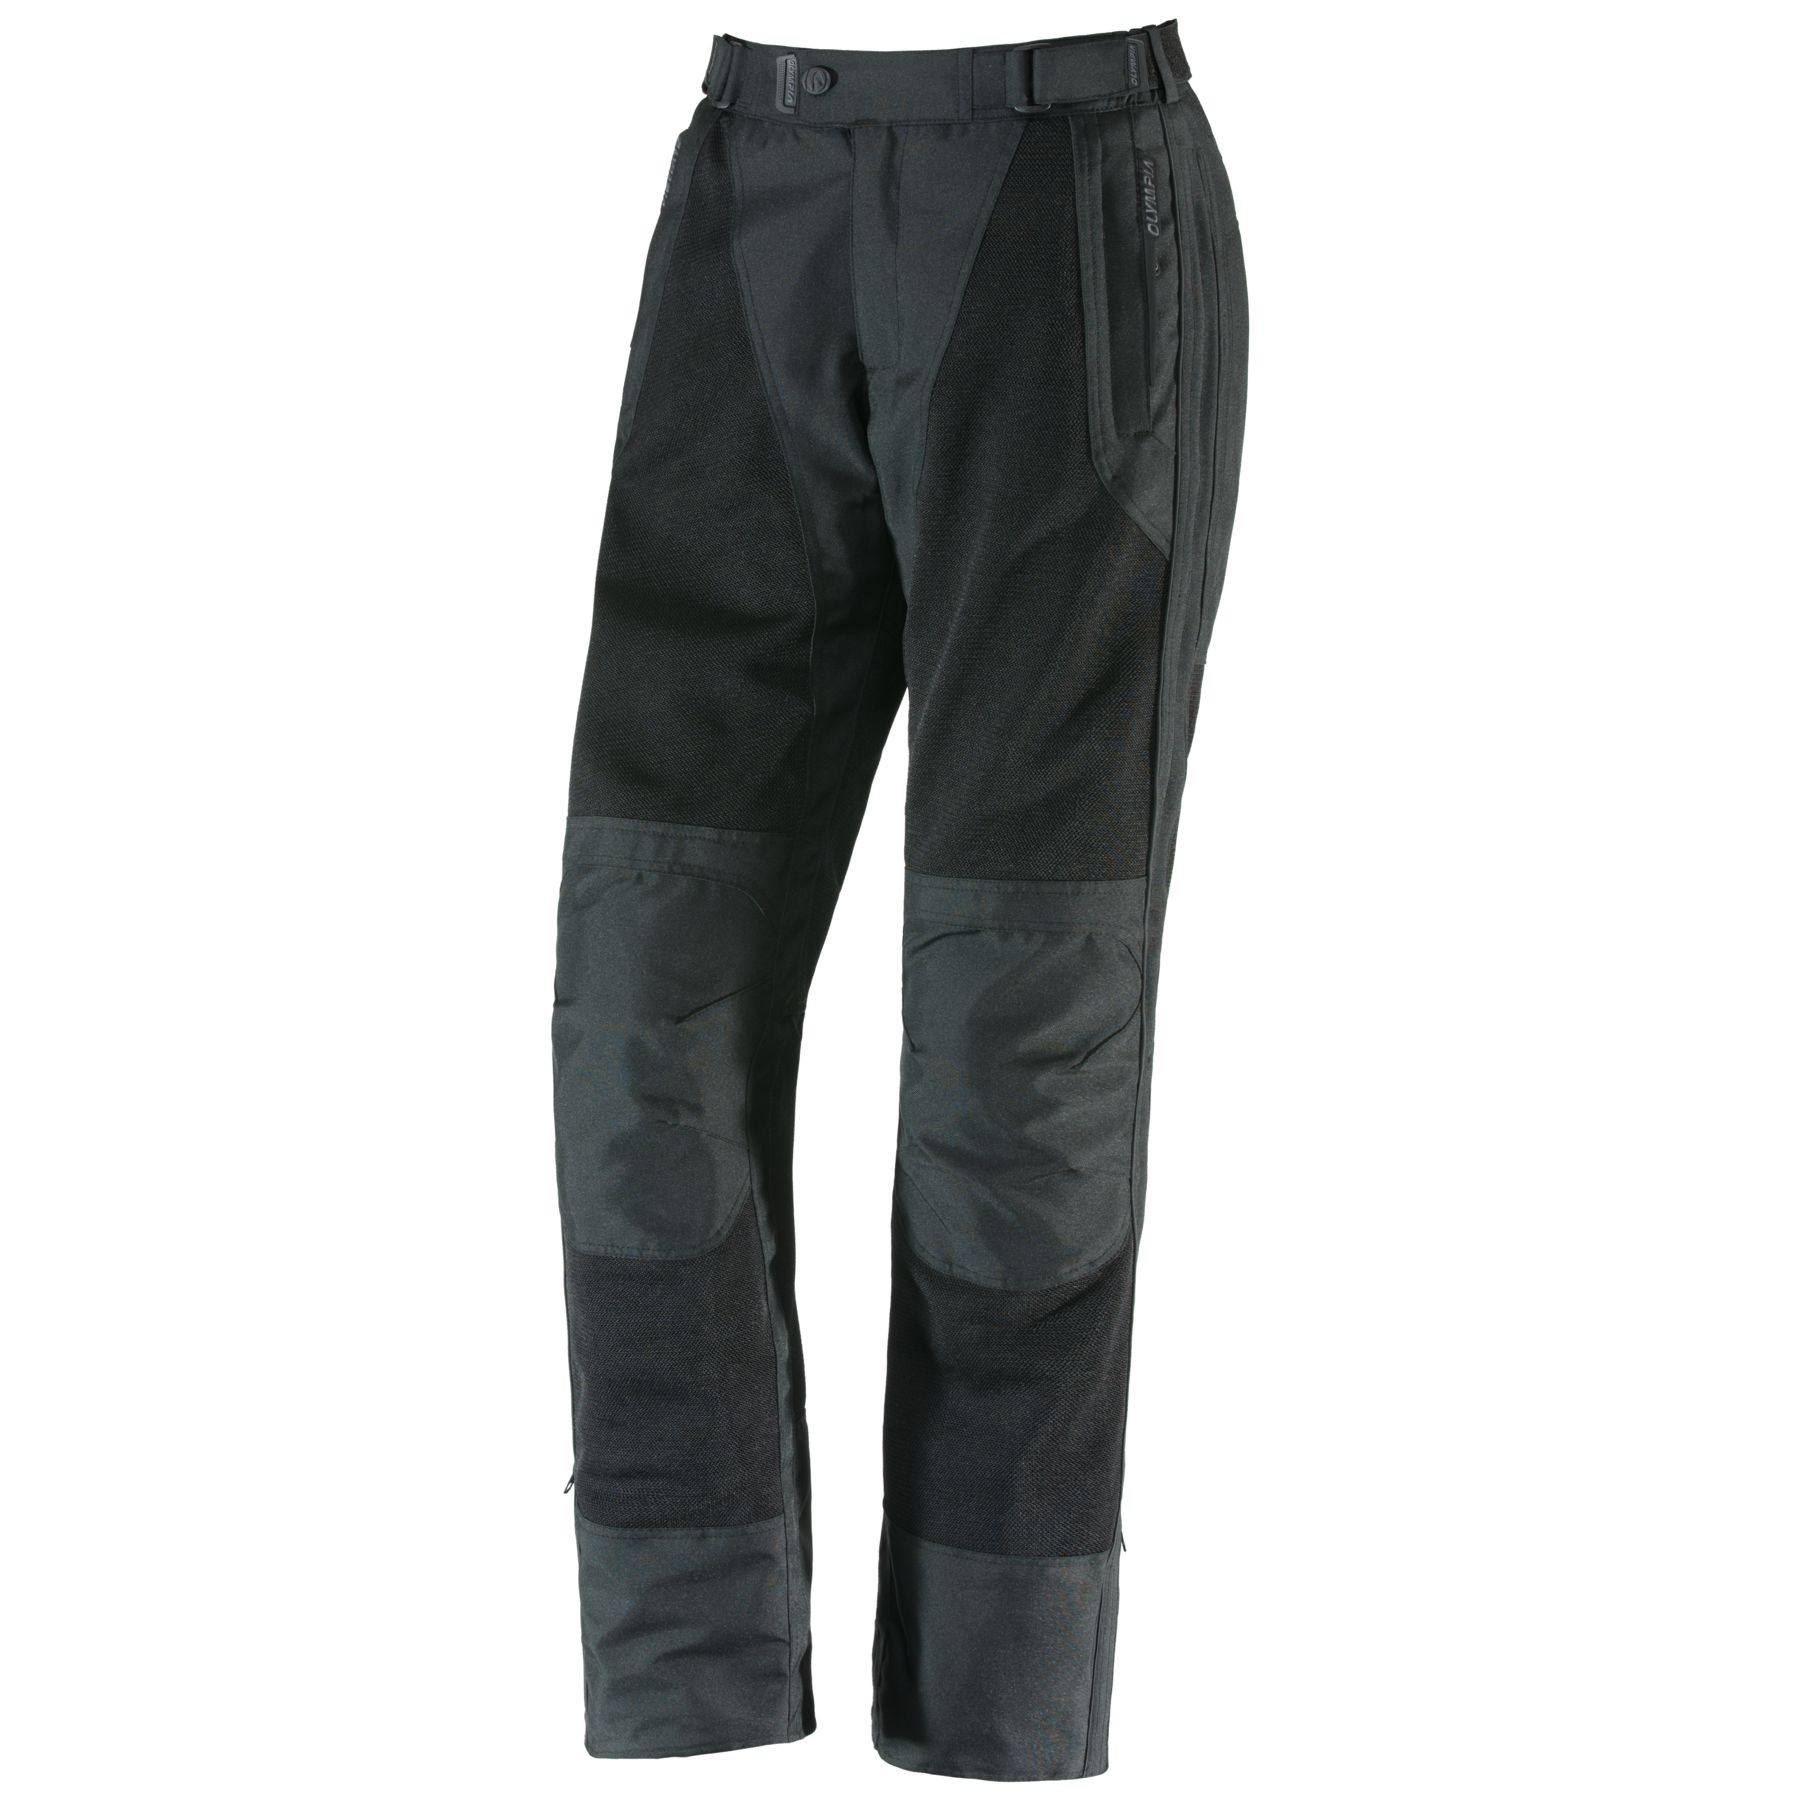 Olympia Womens Eve Pant Black, Size 10